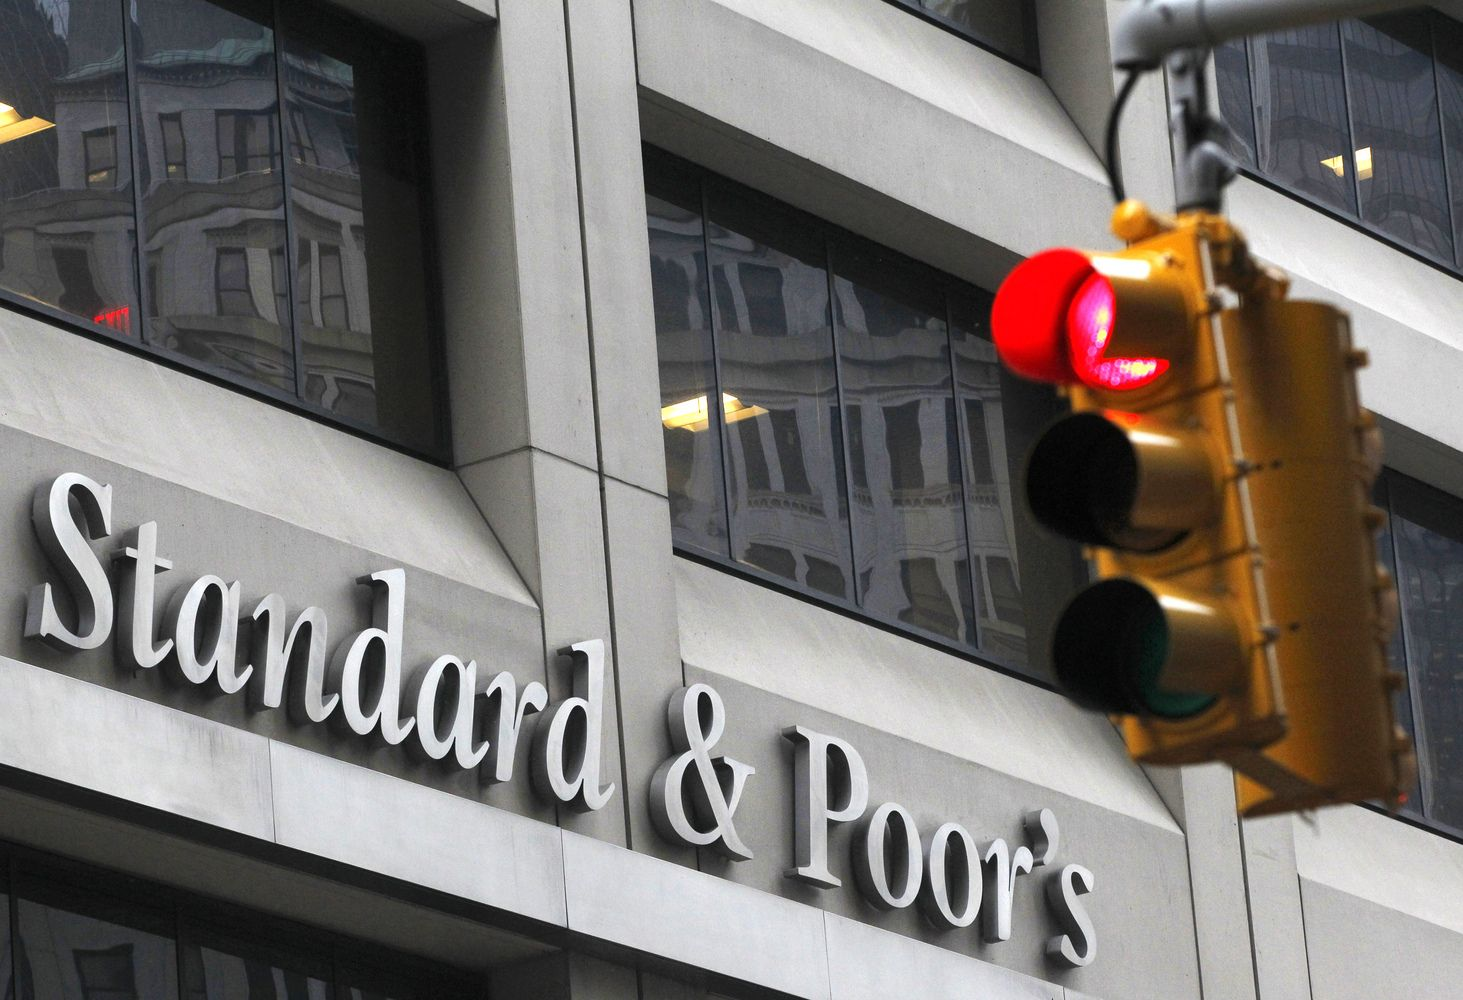 China's Credit Rating Cut as S&P Cites Risk From Debt Growth